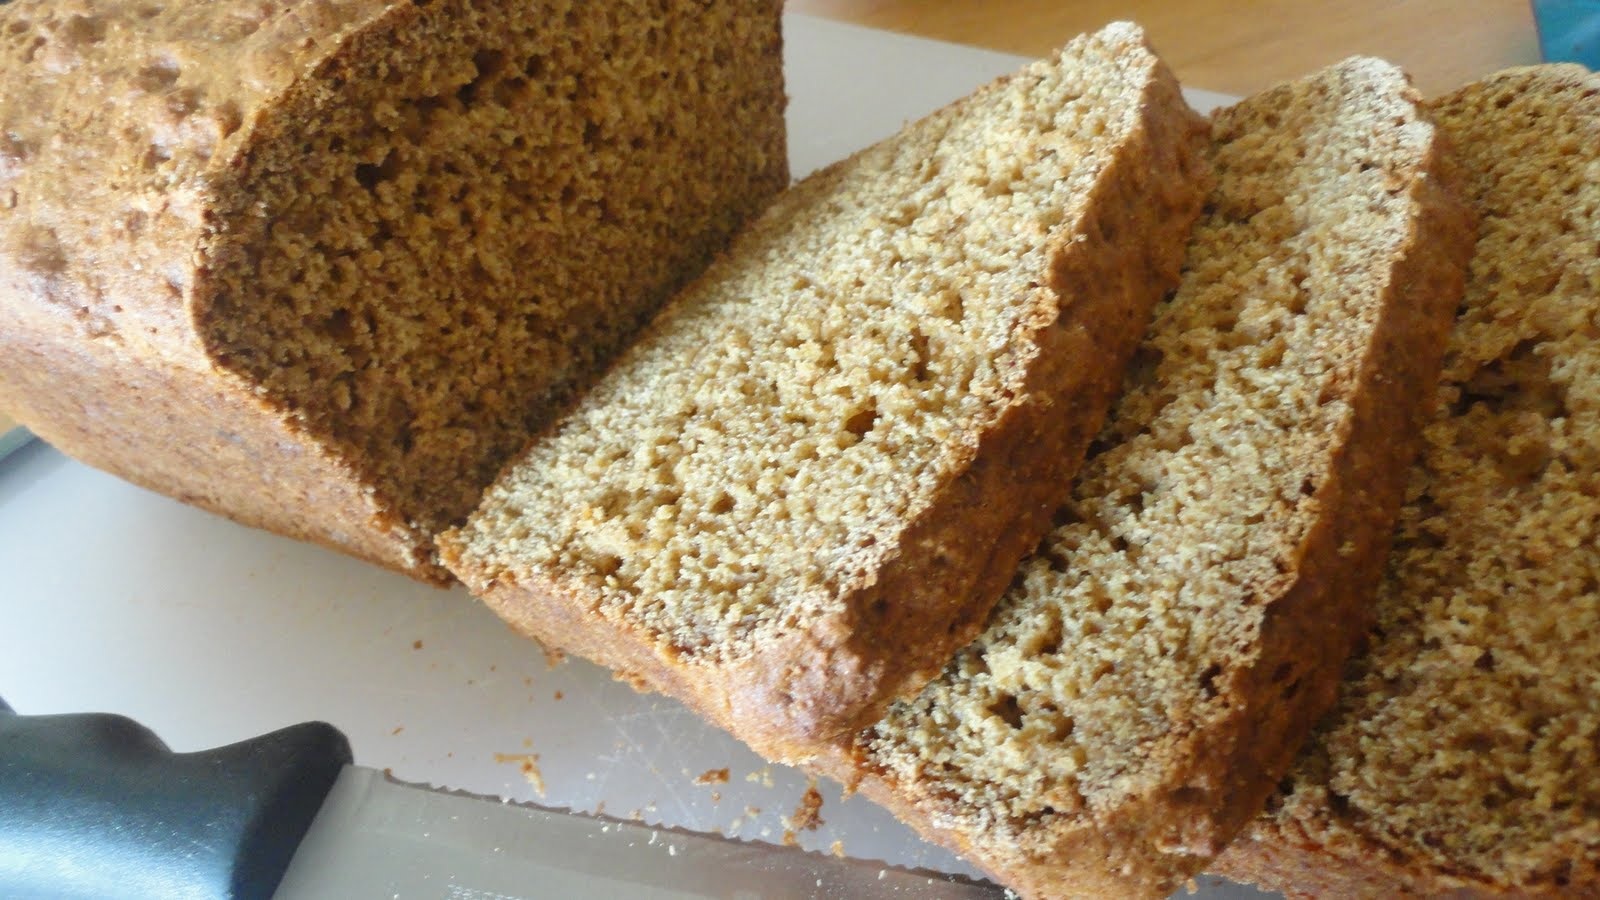 Download image Boston Brown Bread PC, Android, iPhone and iPad ...